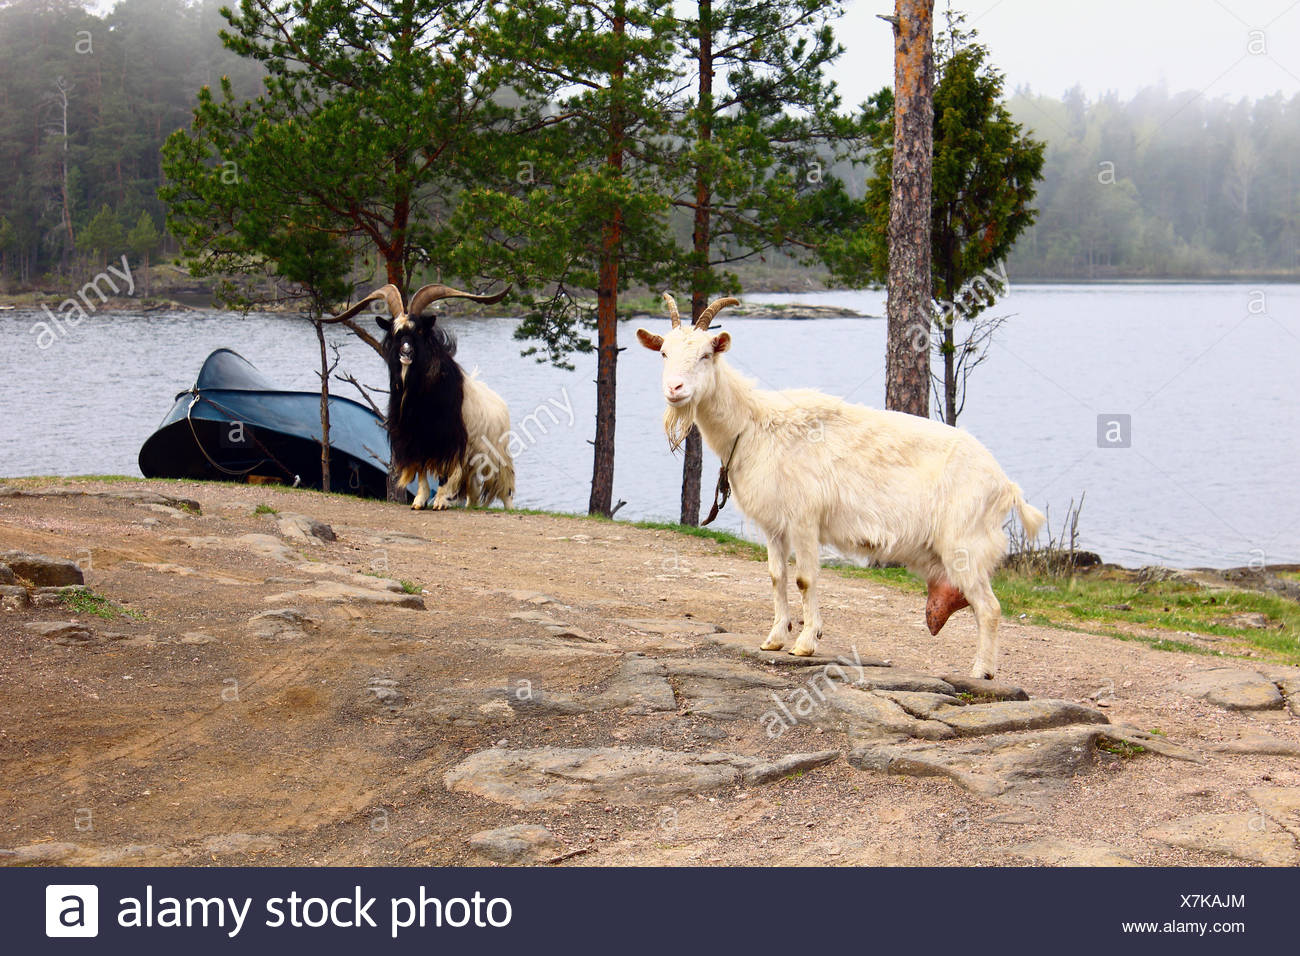 two goats and a boat on the island stock photo 280093932 alamy